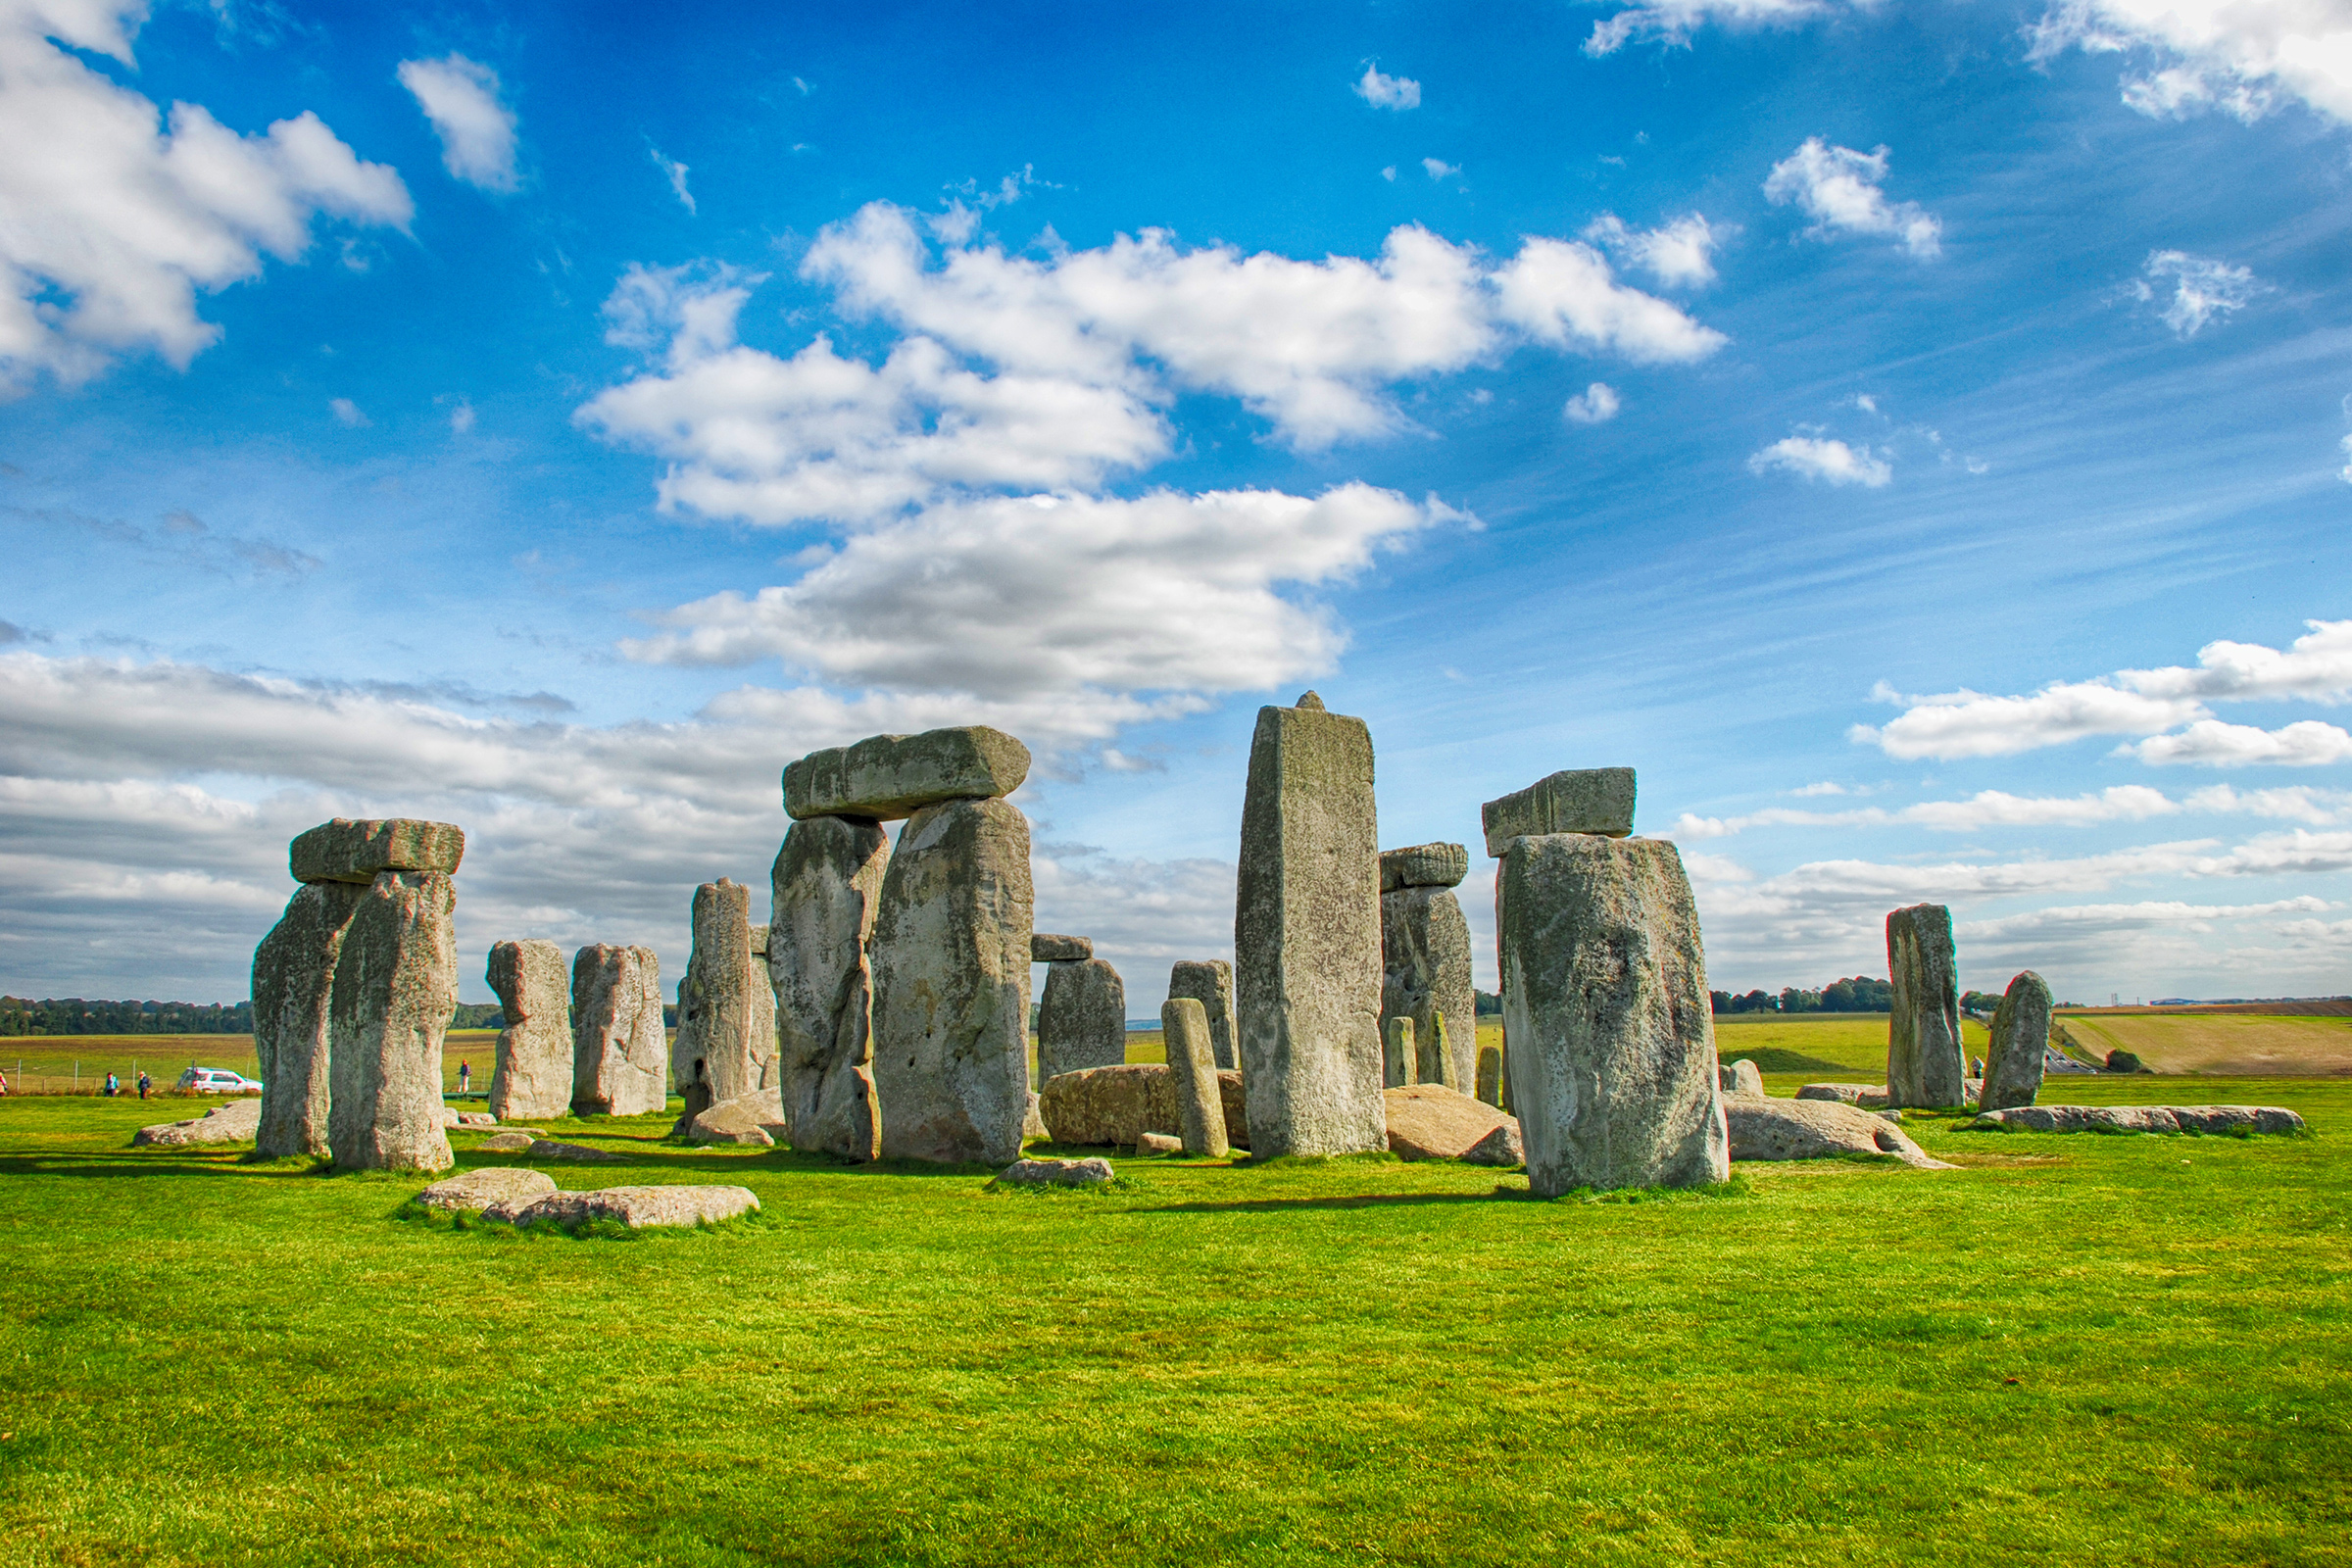 United Kingdom Stonehenge